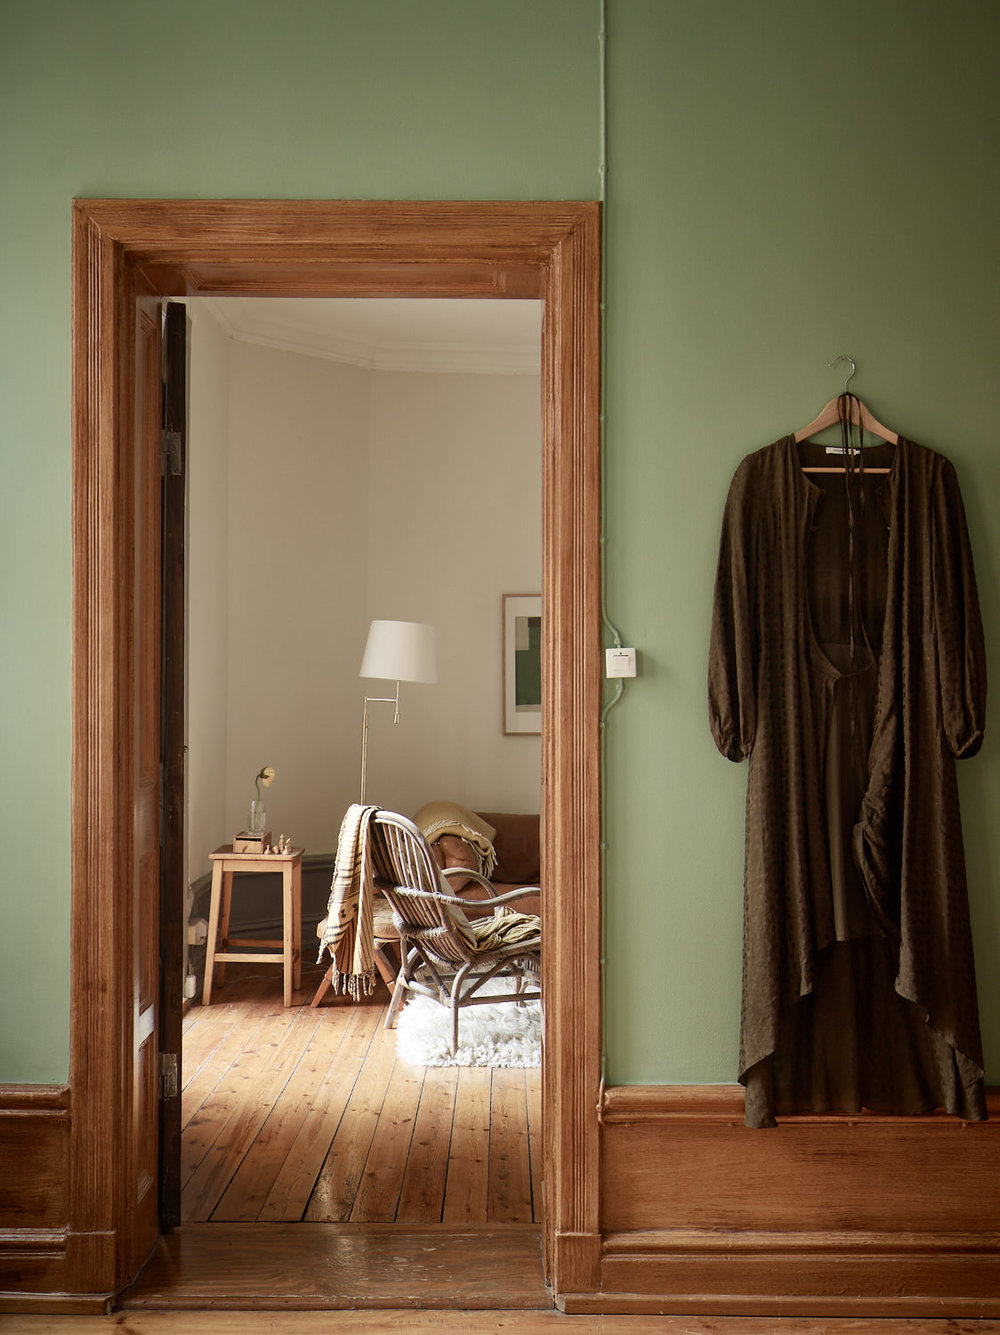 The Nordroom - A Charming Scandinavian Apartment with Original Details and Muted Colors